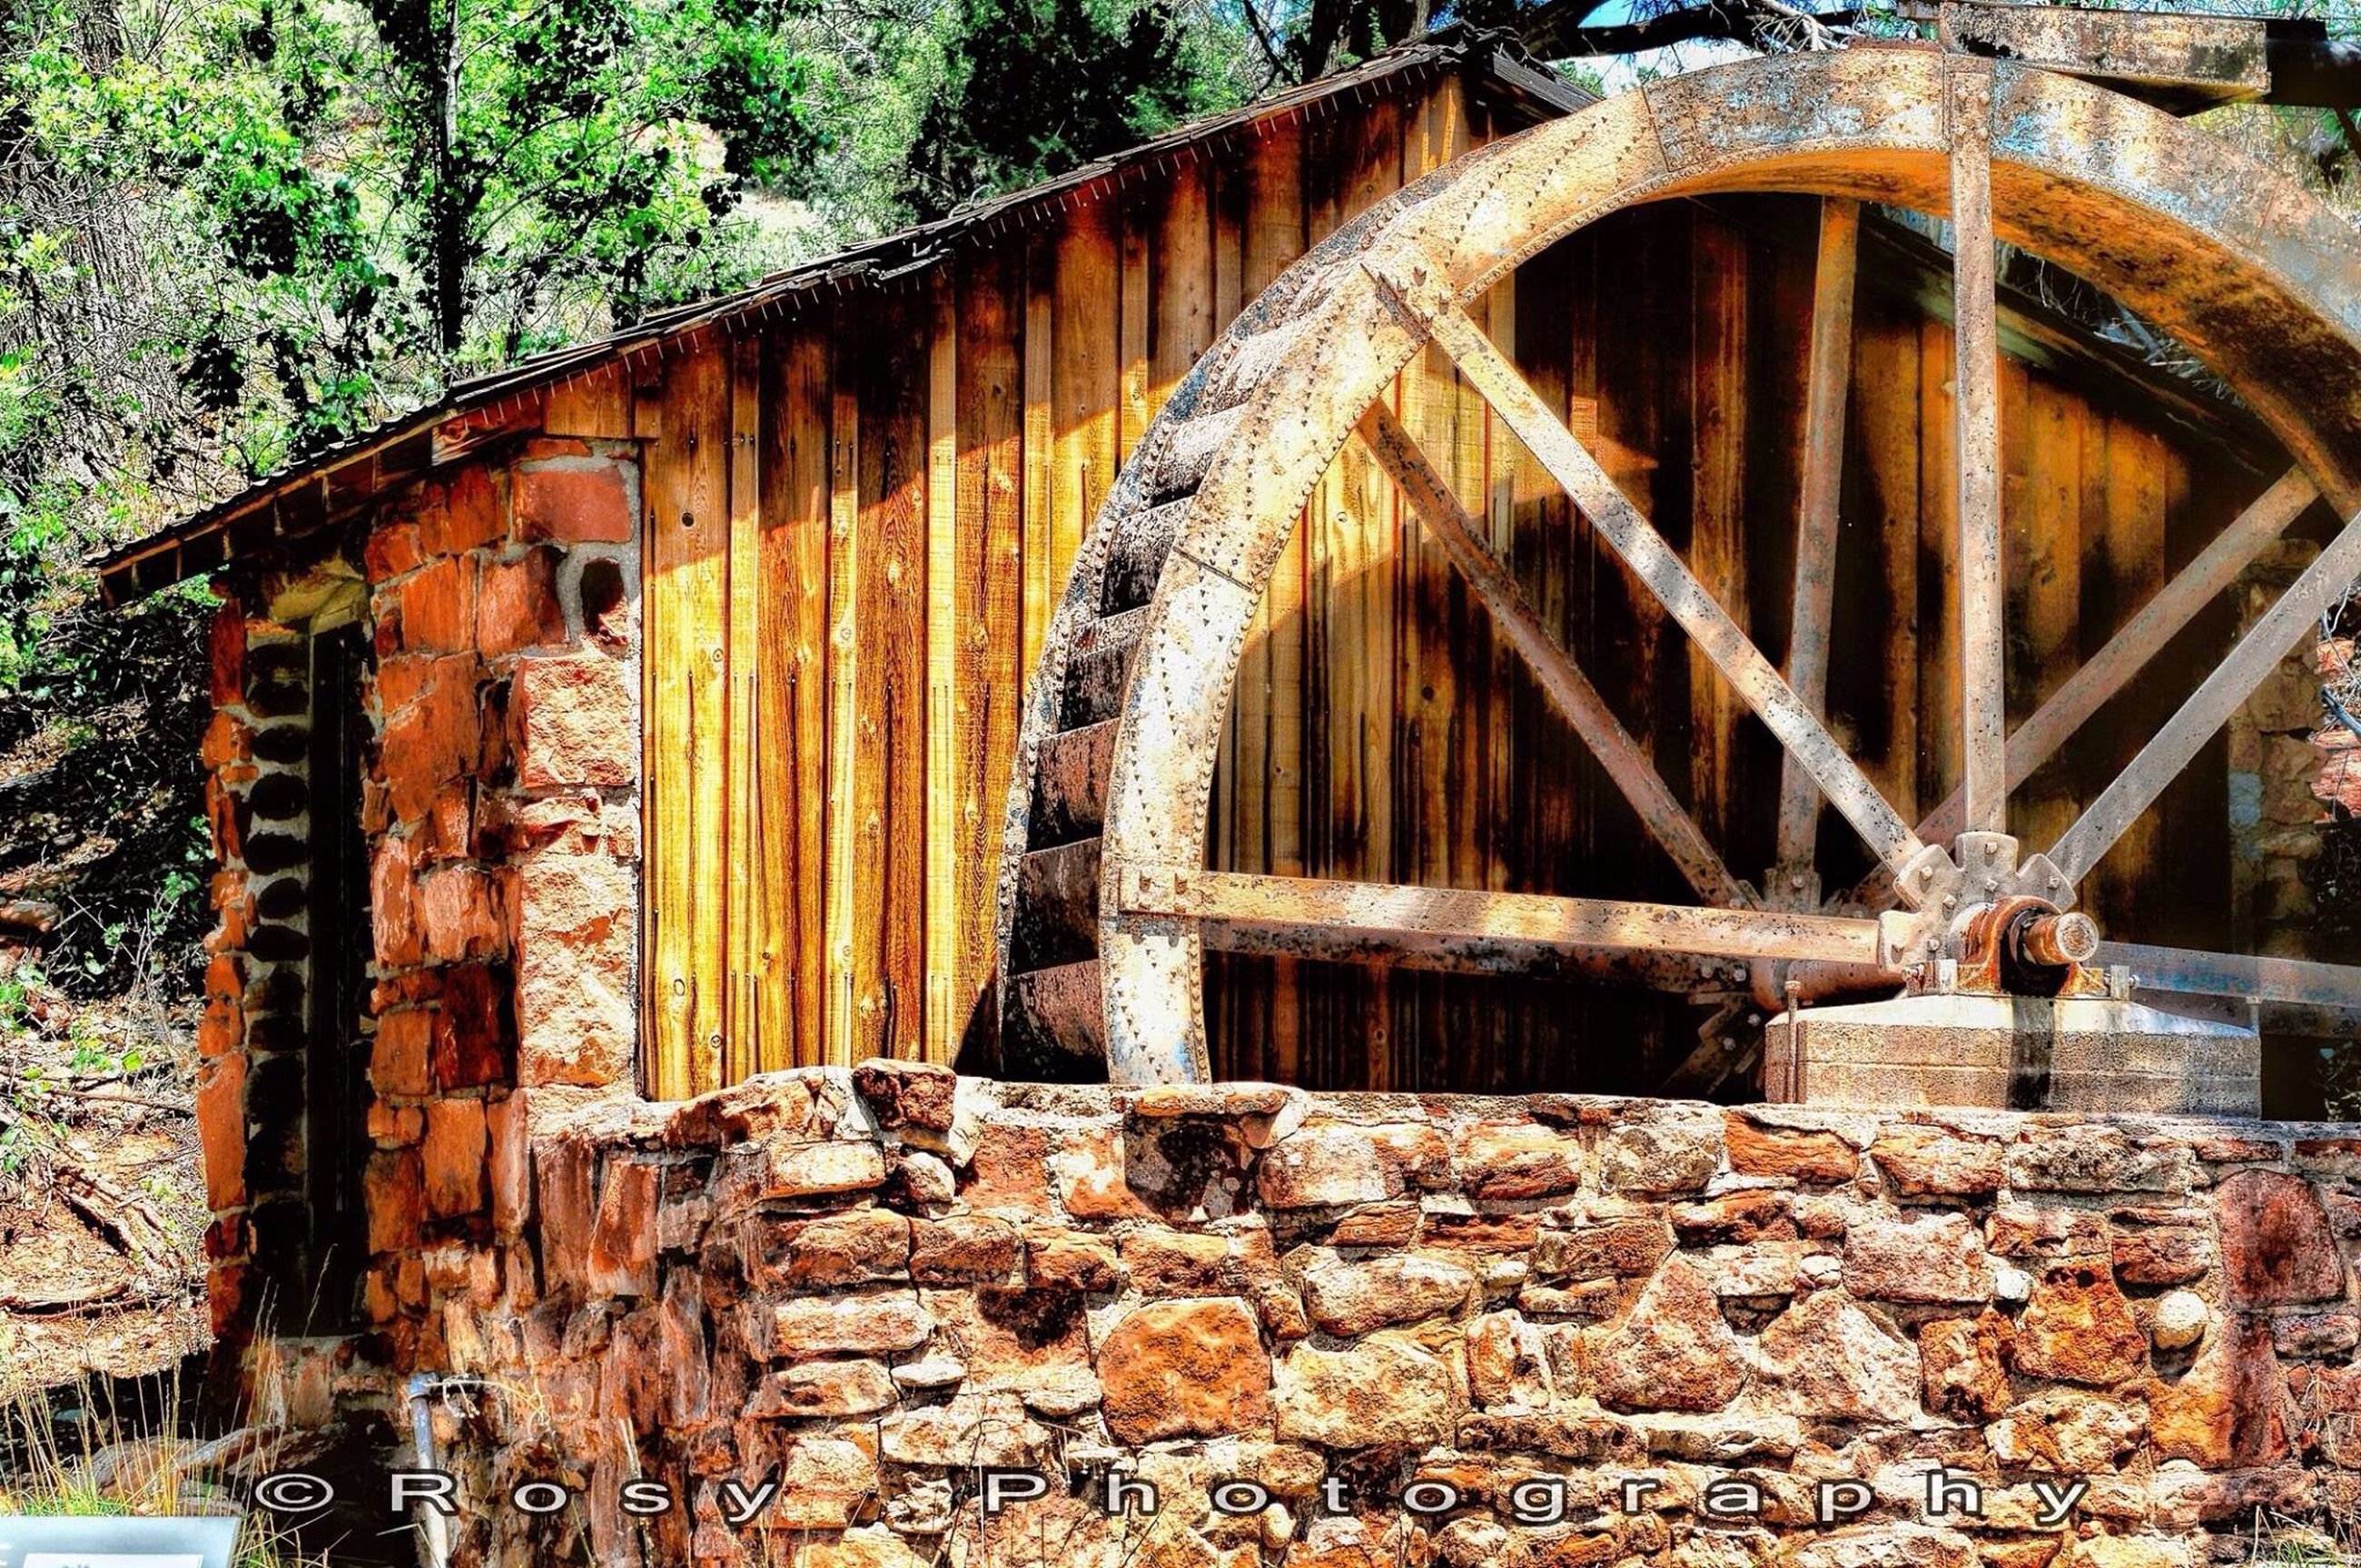 built structure, architecture, arch, abandoned, old, connection, bridge - man made structure, weathered, deterioration, stone wall, obsolete, building exterior, run-down, damaged, wall - building feature, tree, rusty, brick wall, outdoors, no people